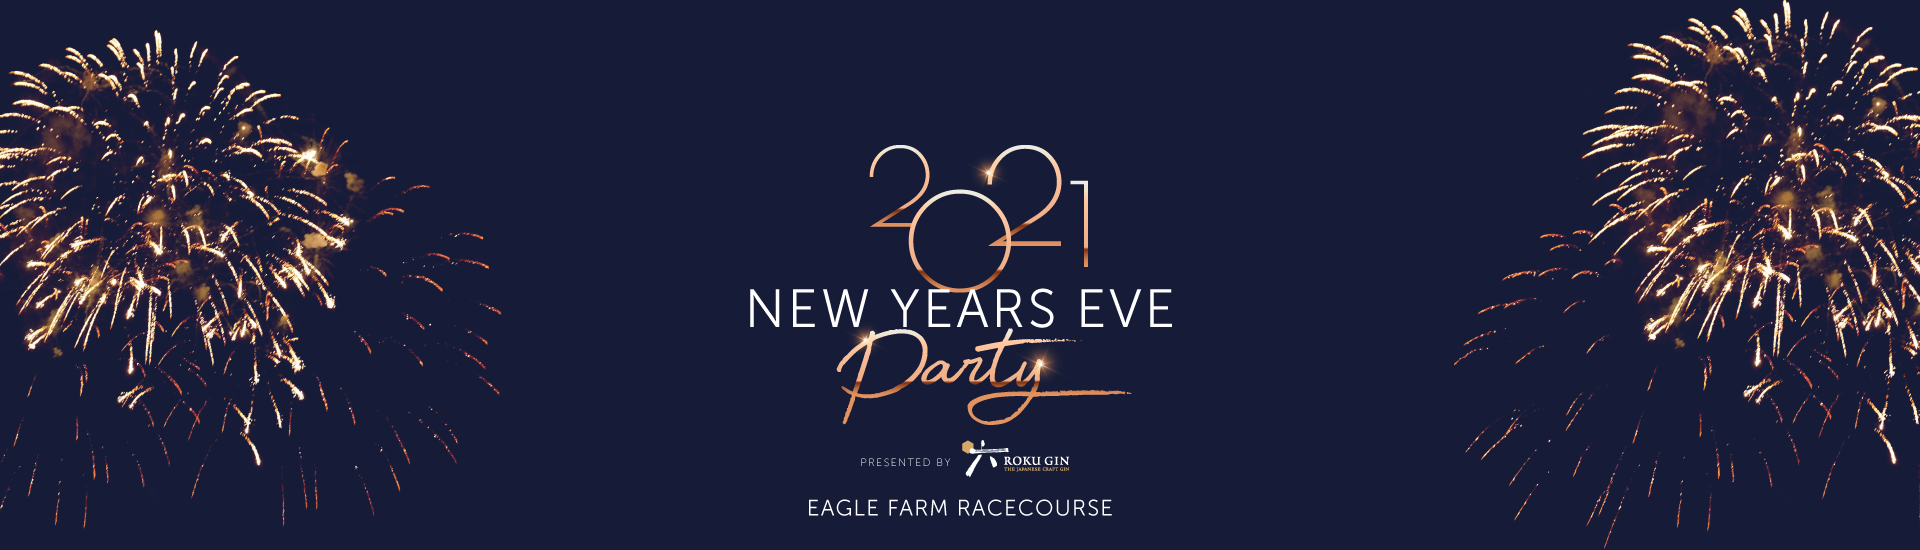 New Years Eve at Eagle Farm Racecourse | Brisbane Racing Club